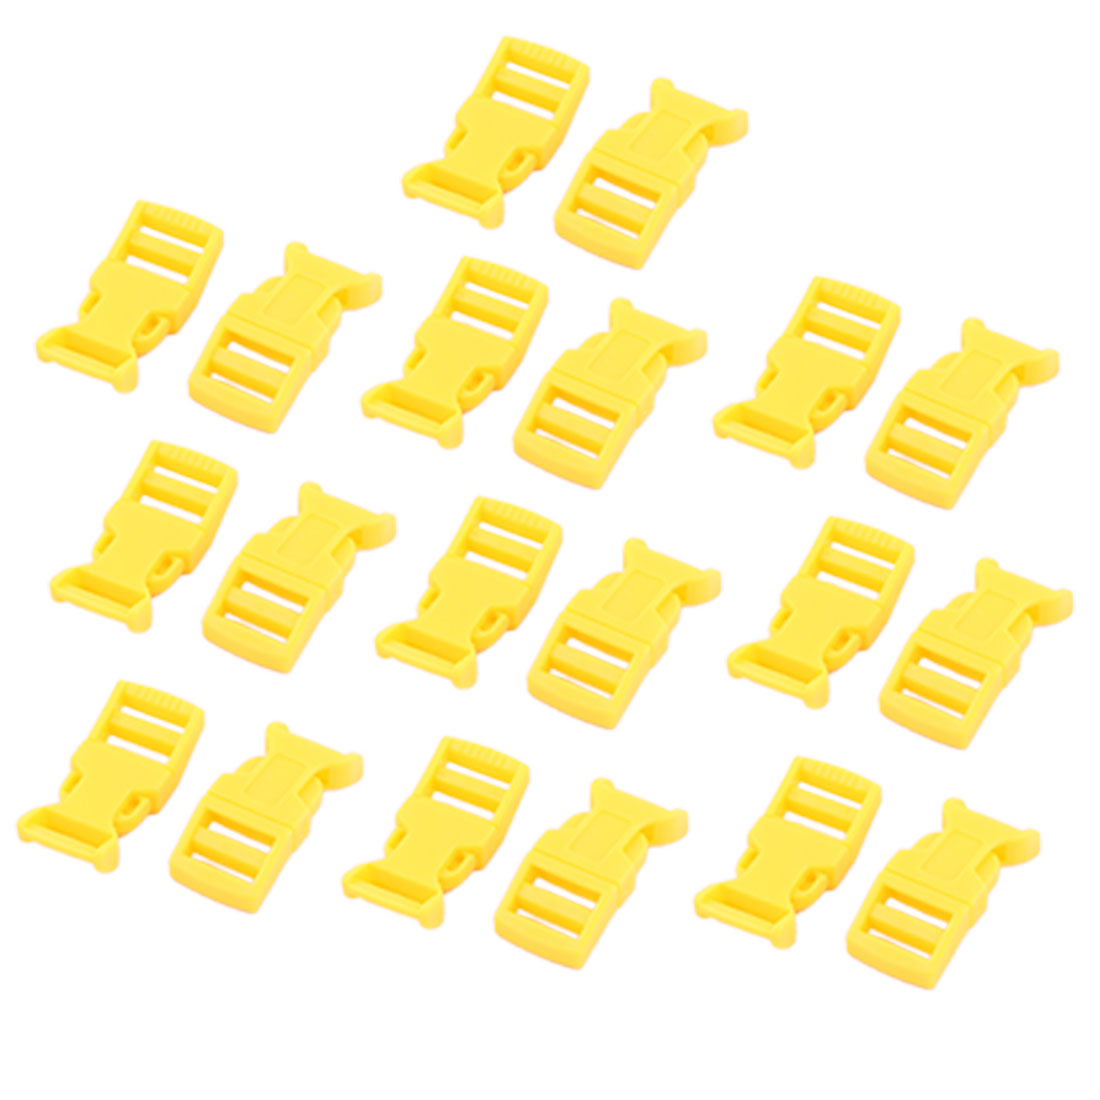 Backpack Plastic Replacement Strap Safety Quick Release Buckle 20 Pc